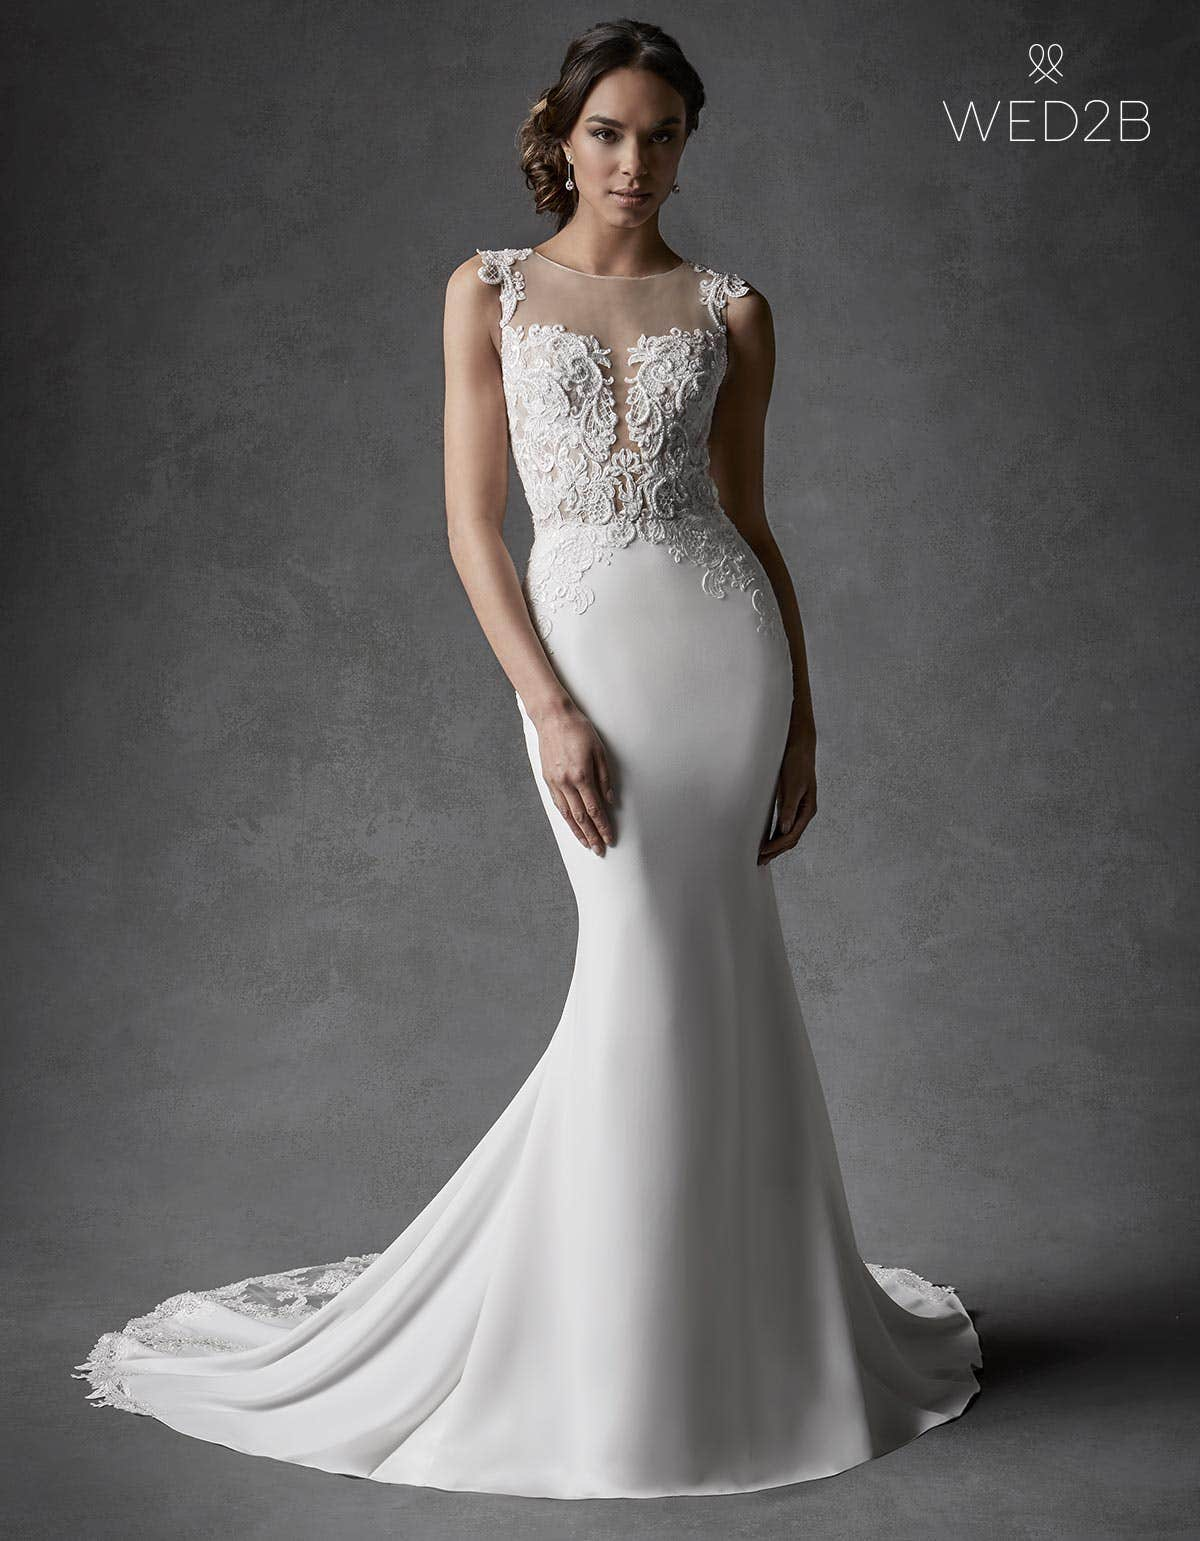 Destination wedding dress - Galilea